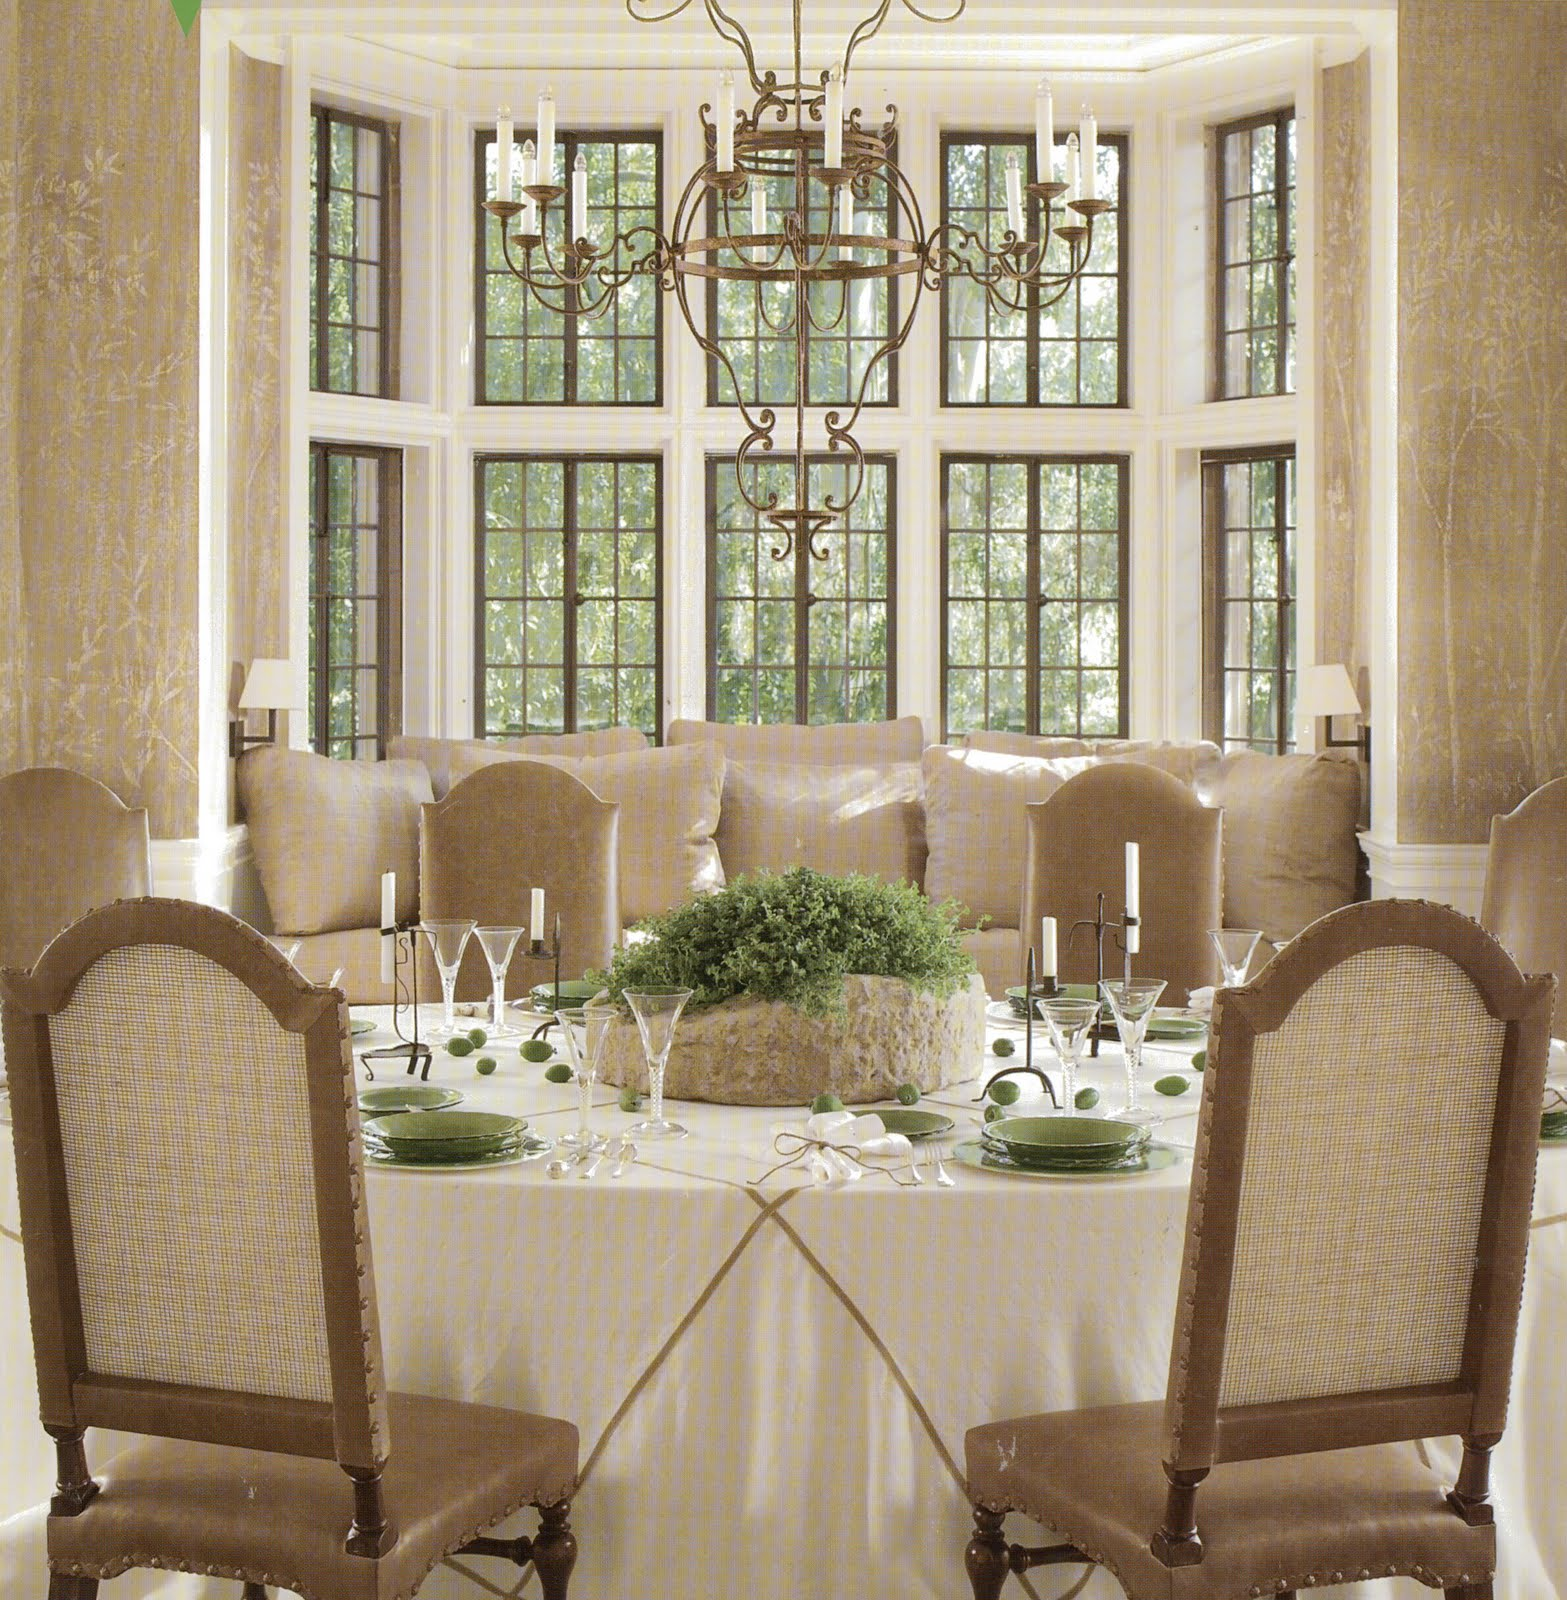 Dining room window treatments ideas large and beautiful Drapery treatments ideas